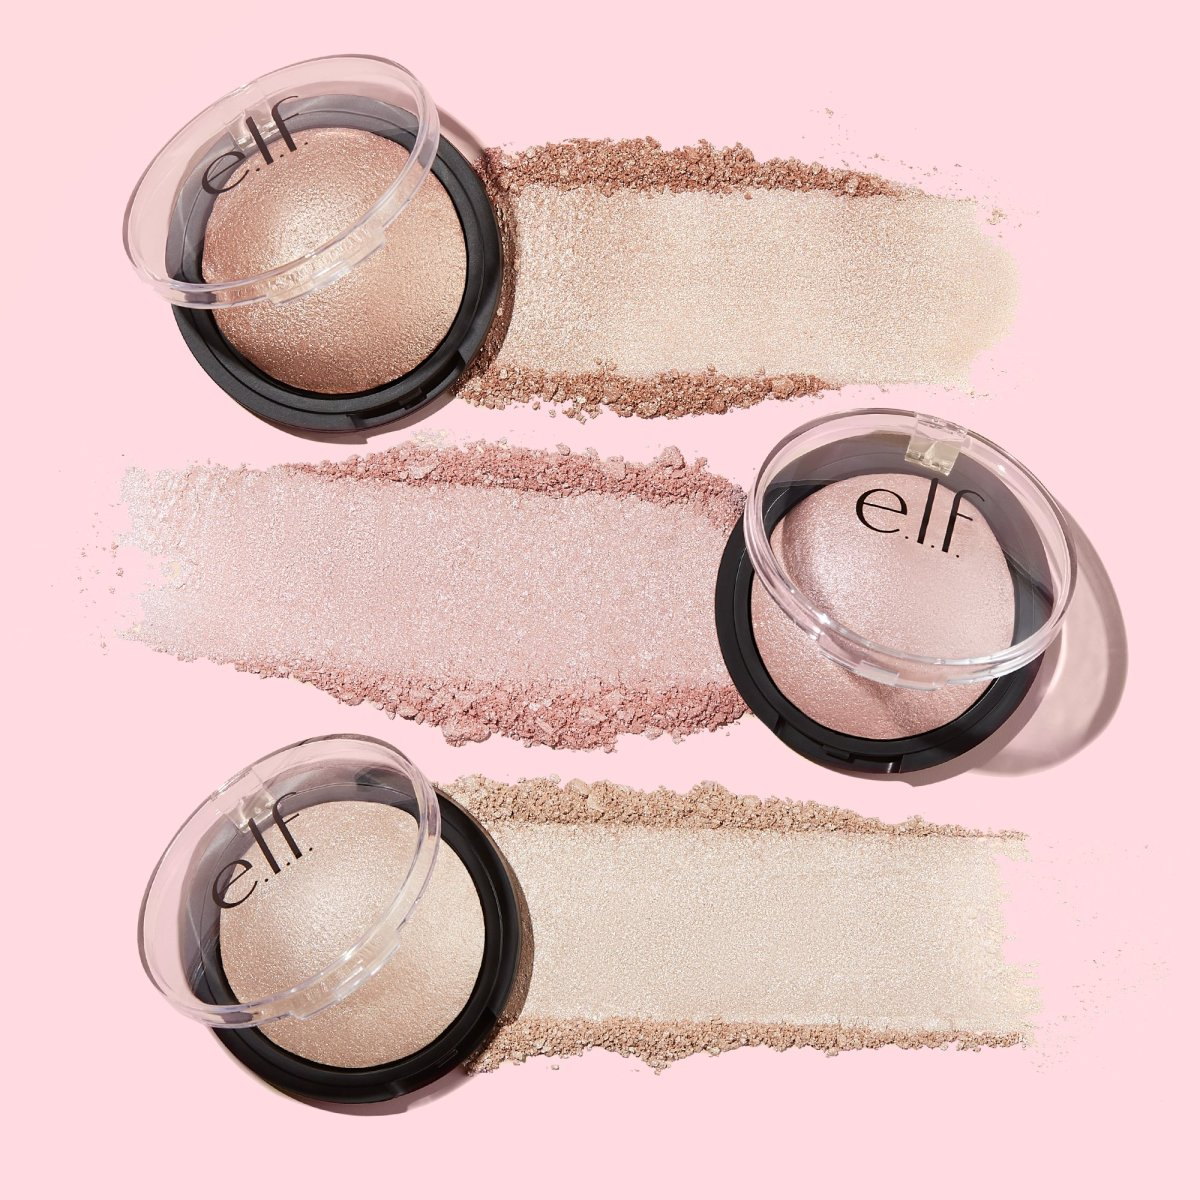 e.l.f Cosmetics Baked Highlighter